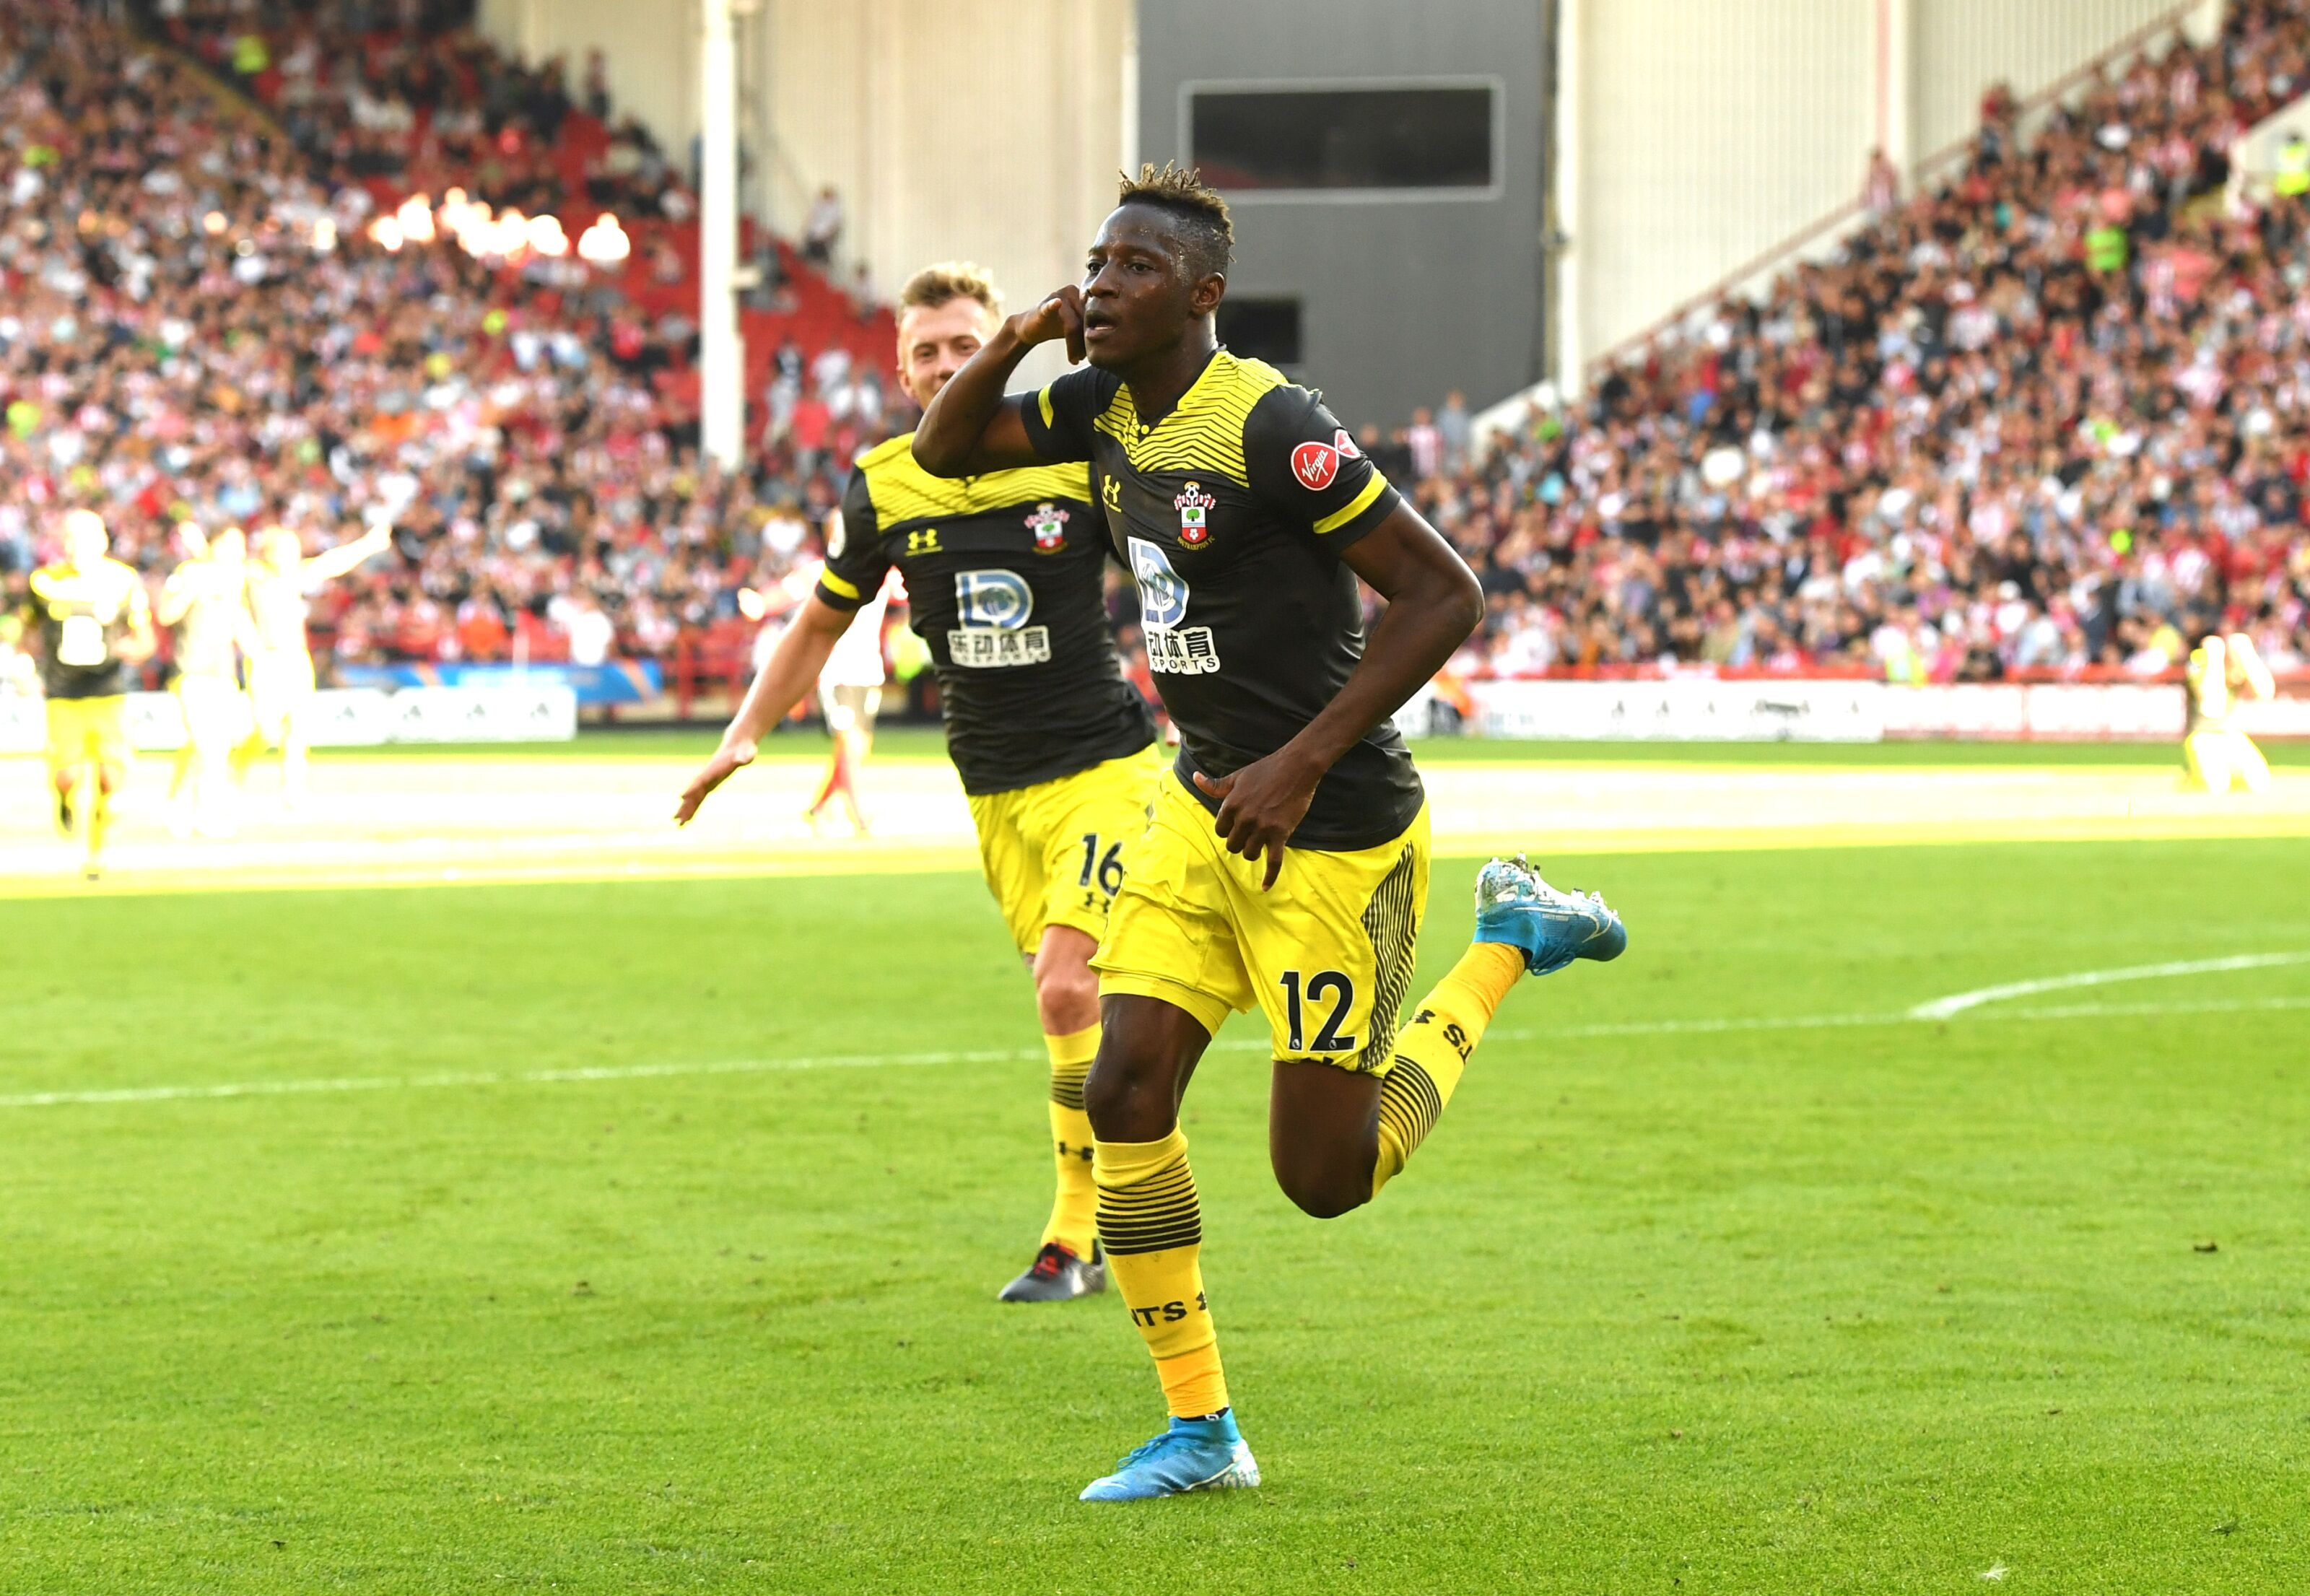 Sheffield United 0-1 Southampton: Djenepo the man again for Saints after special winning goal